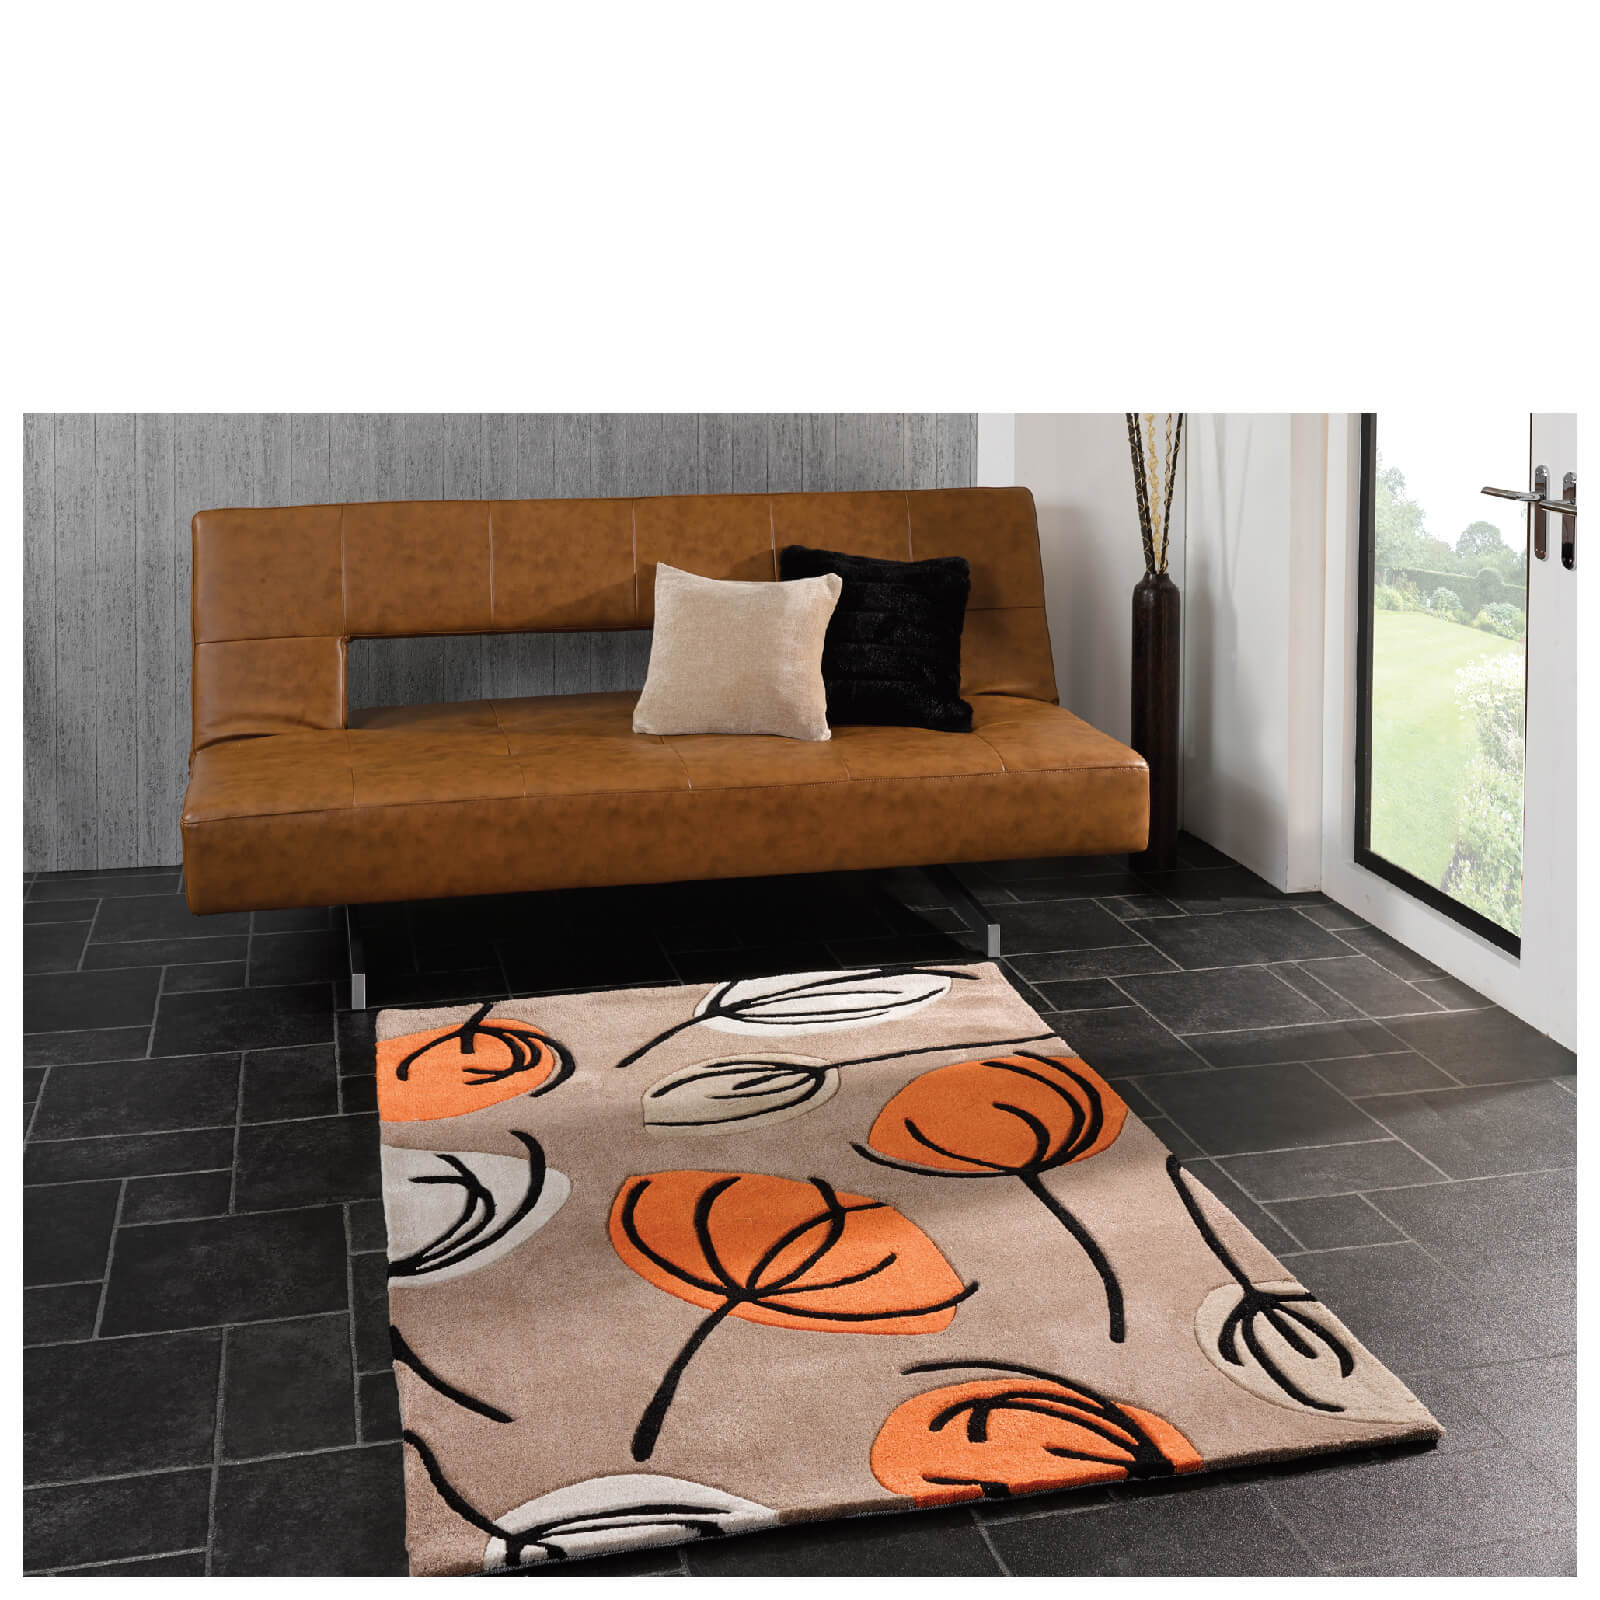 Flair Infinite Inspire Rug - Fifties Floral Orange